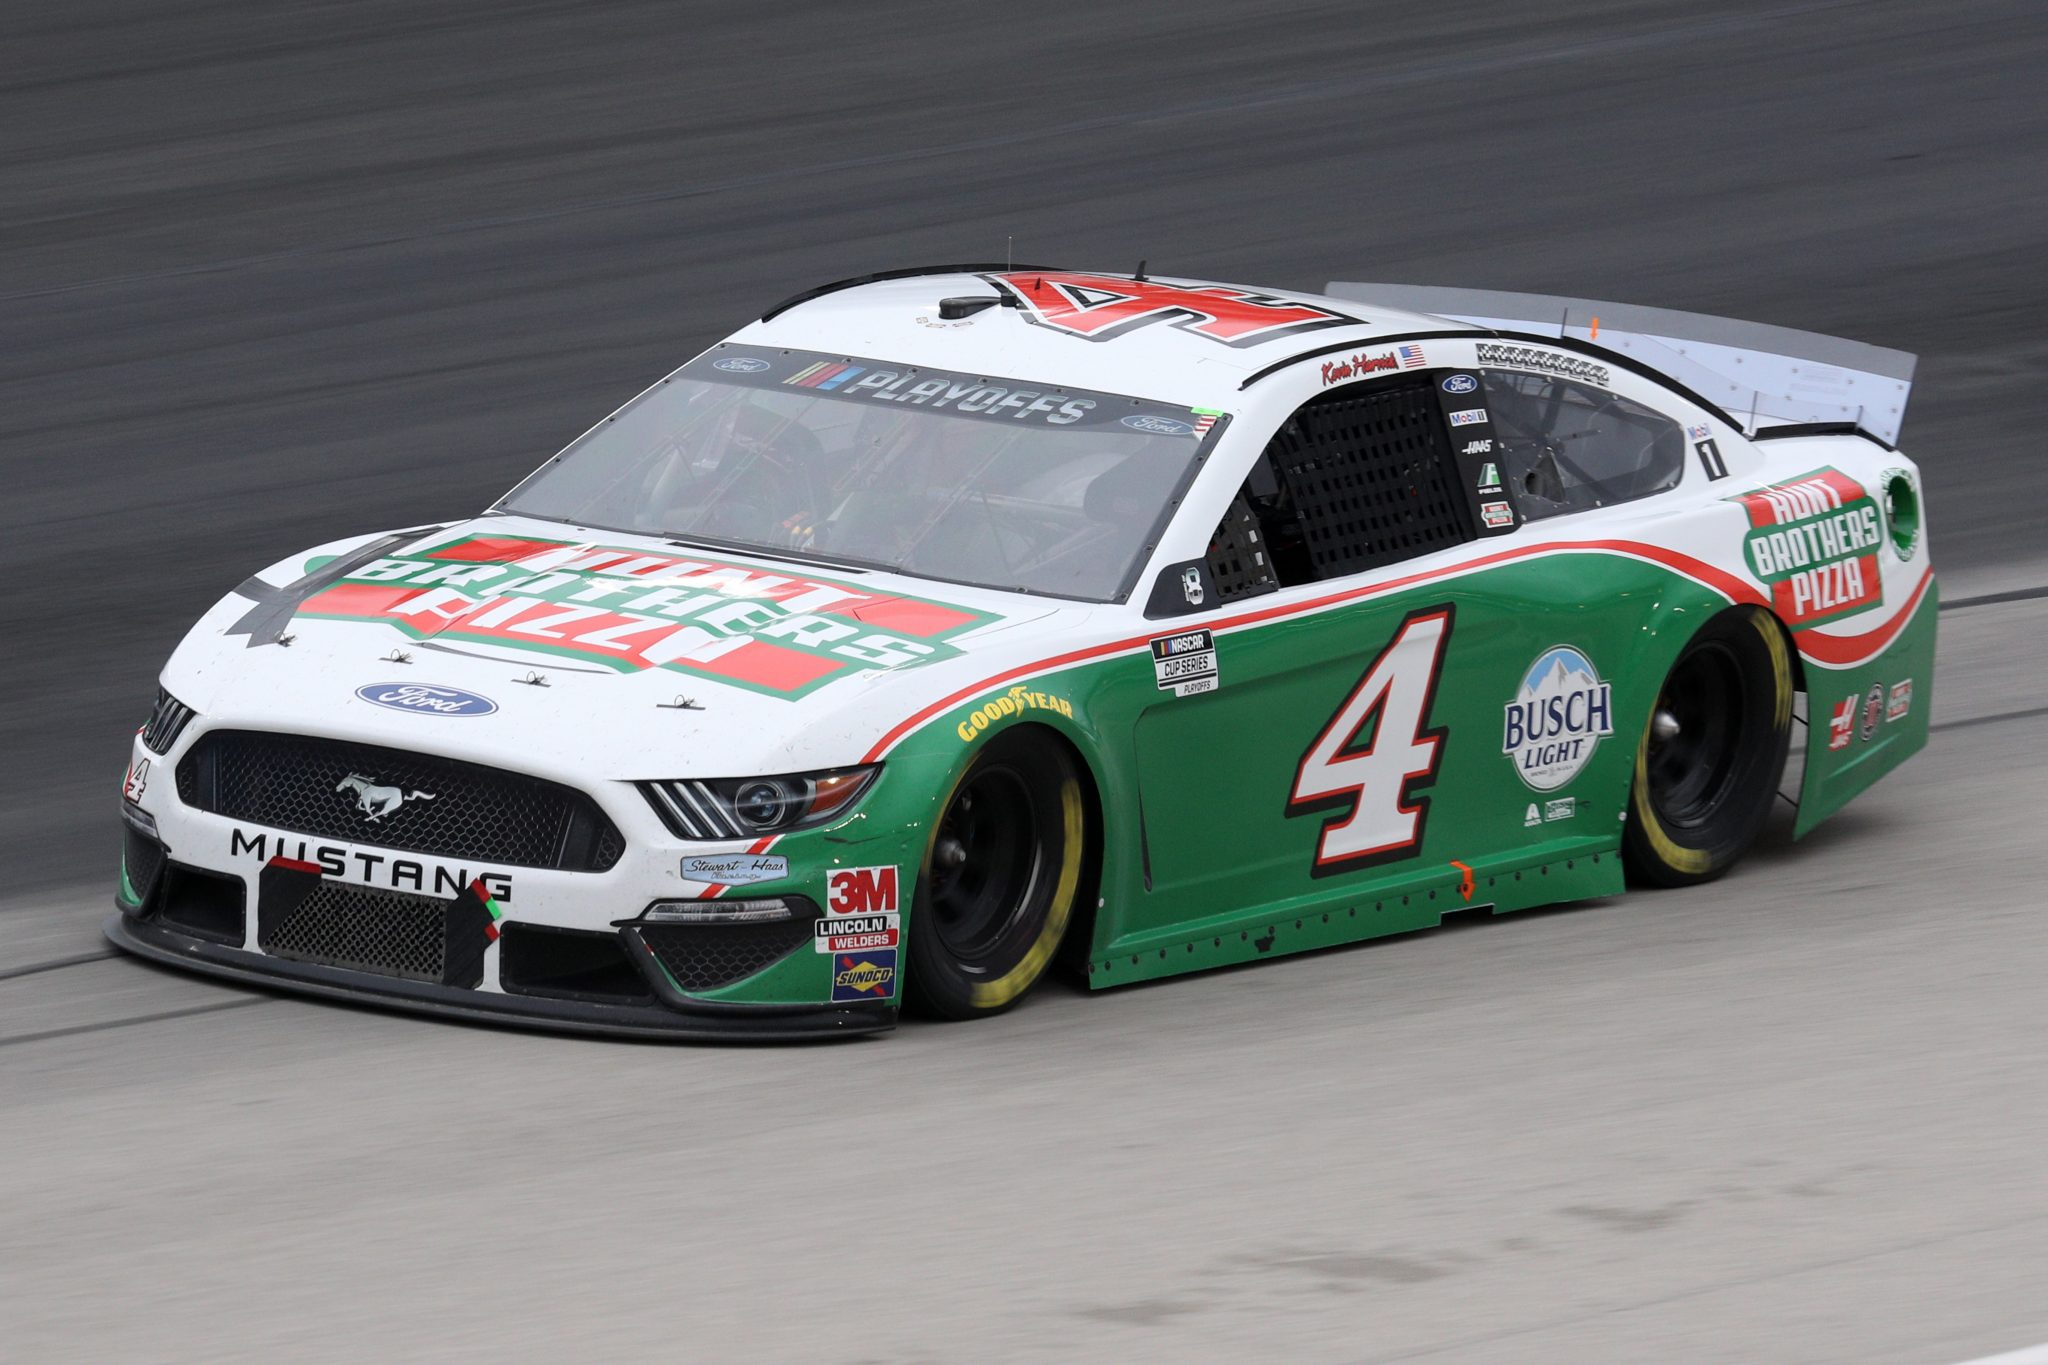 FORT WORTH, TEXAS - OCTOBER 28: Kevin Harvick, driver of the #4 Hunt Brothers Pizza Ford, drives during the NASCAR Cup Series Autotrader EchoPark Automotive 500 at Texas Motor Speedway on October 28, 2020 in Fort Worth, Texas. (Photo by Chris Graythen/Getty Images) | Getty Images